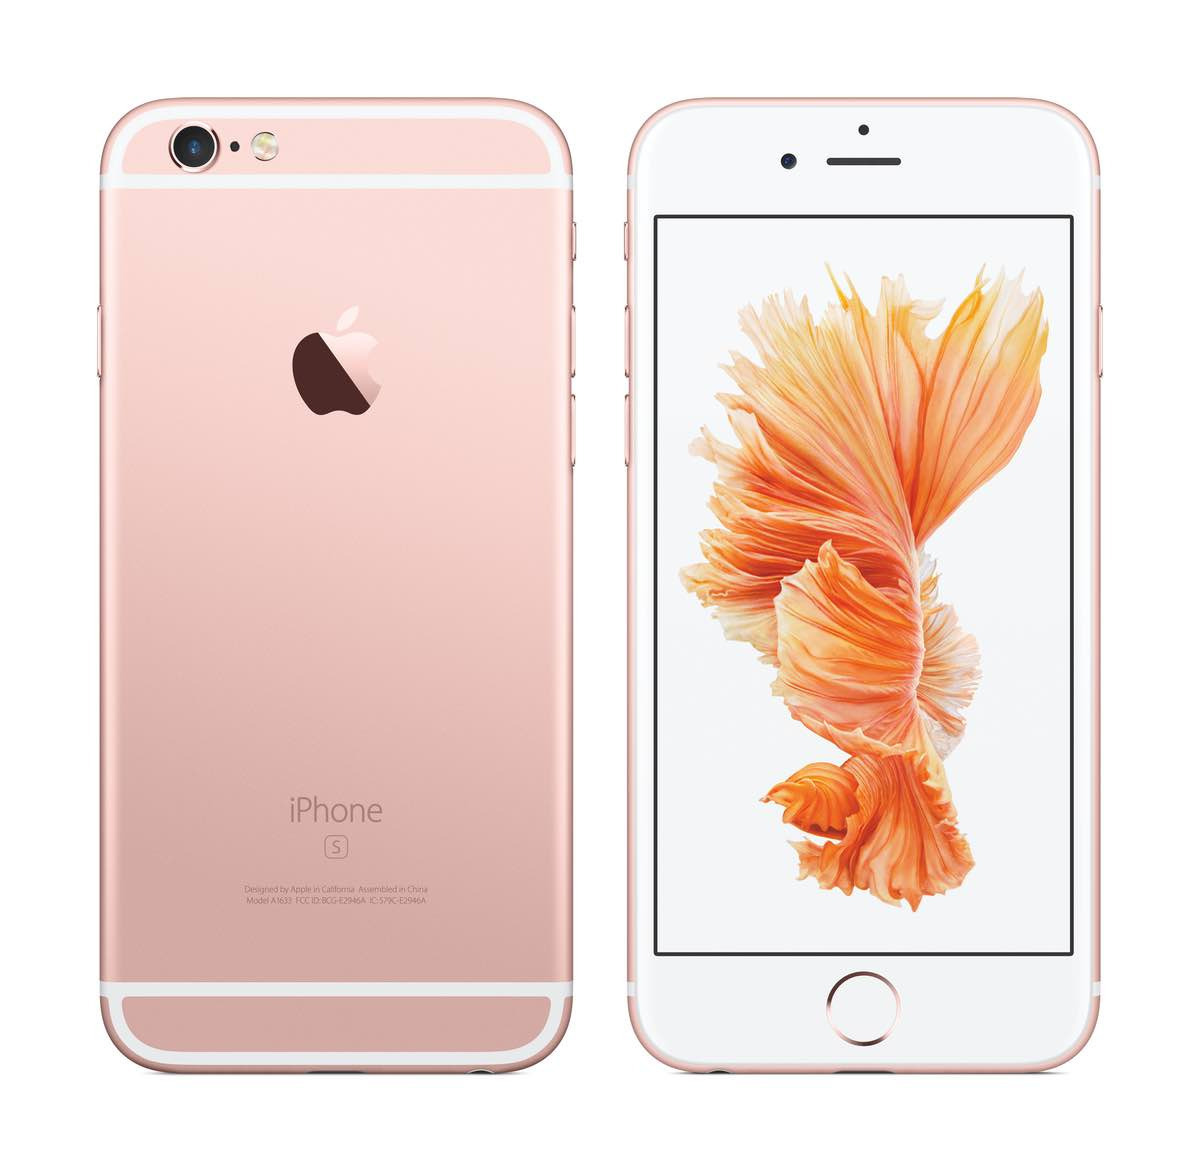 Apple's iPhone 6s Rose Gold Is The New Pink